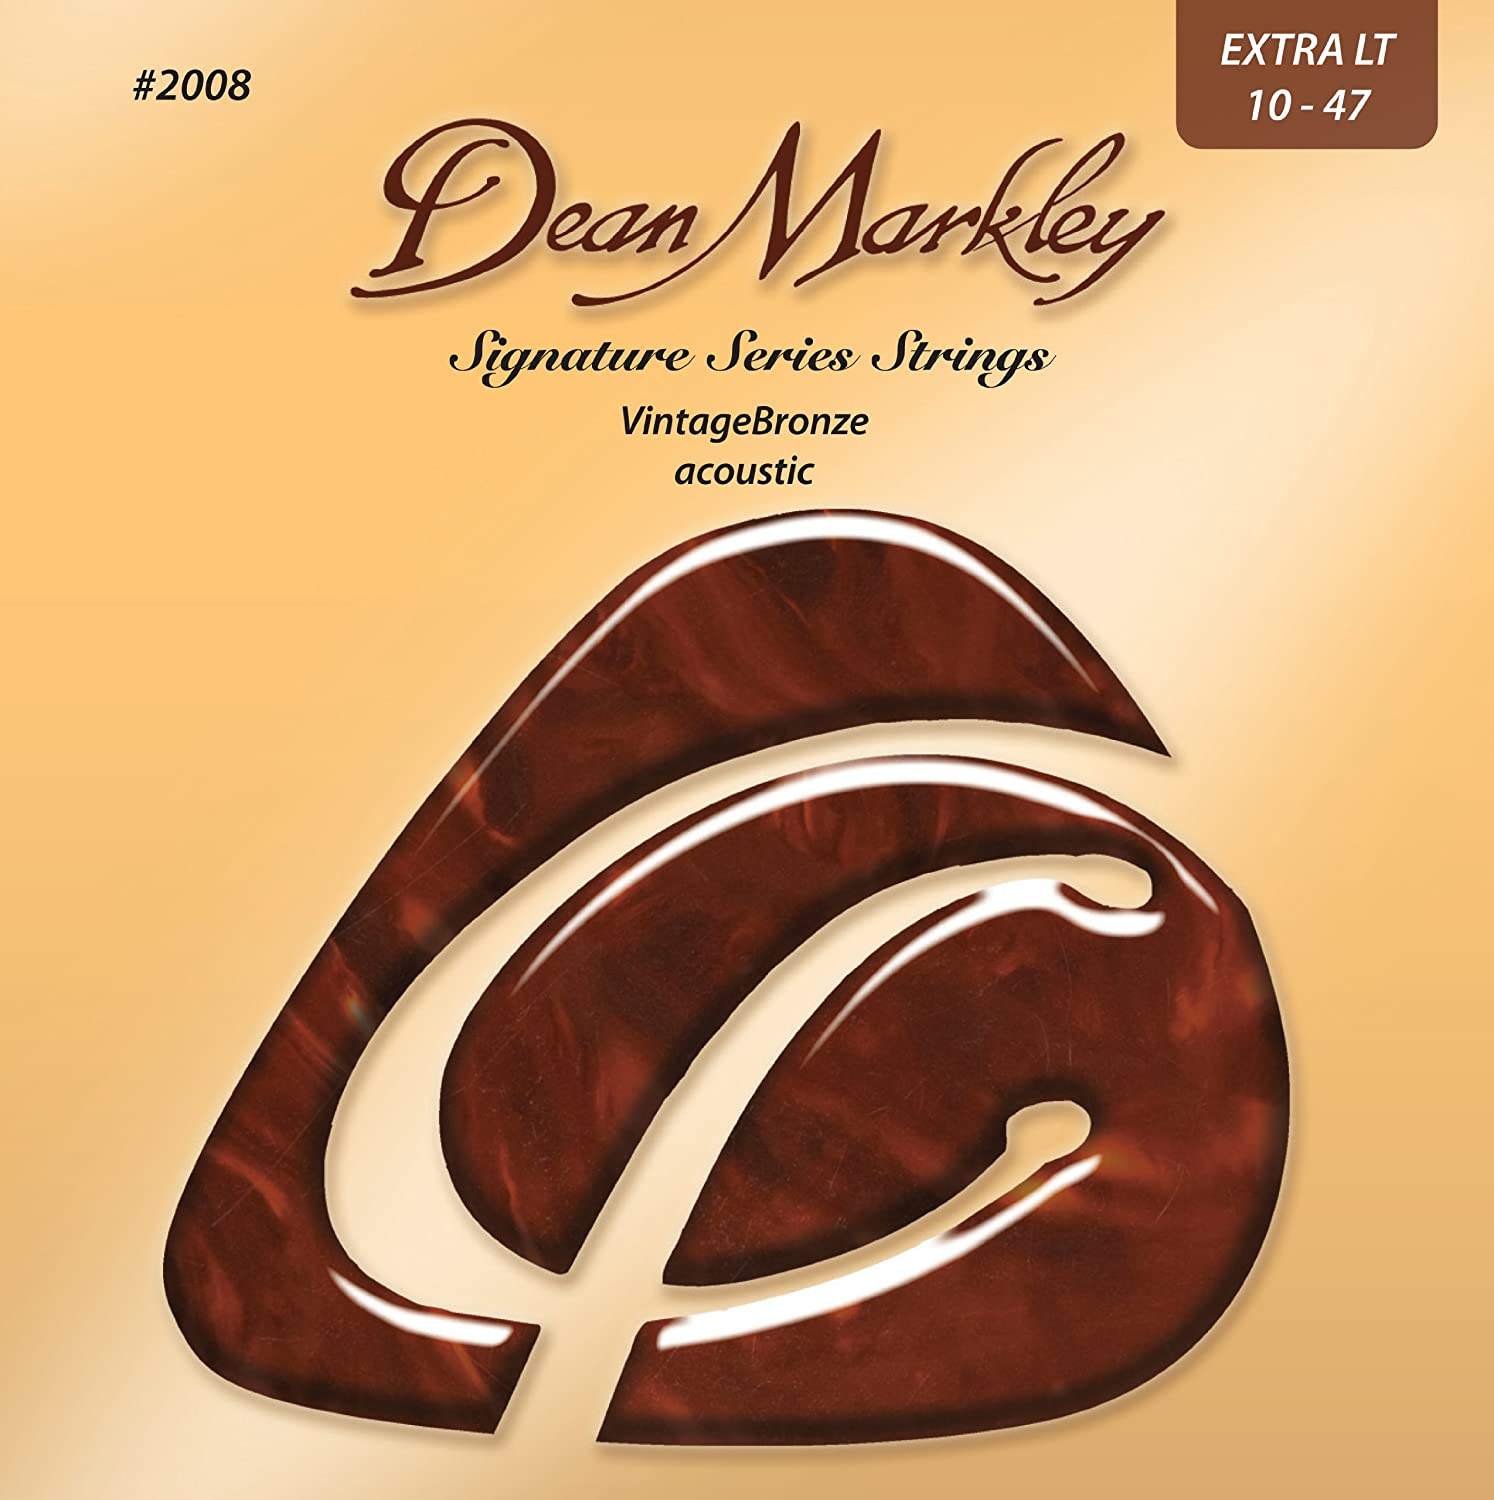 Dean Markley 2008 Vintage Bronze Acoustic Guitar Strings, Extra Light, 10-47